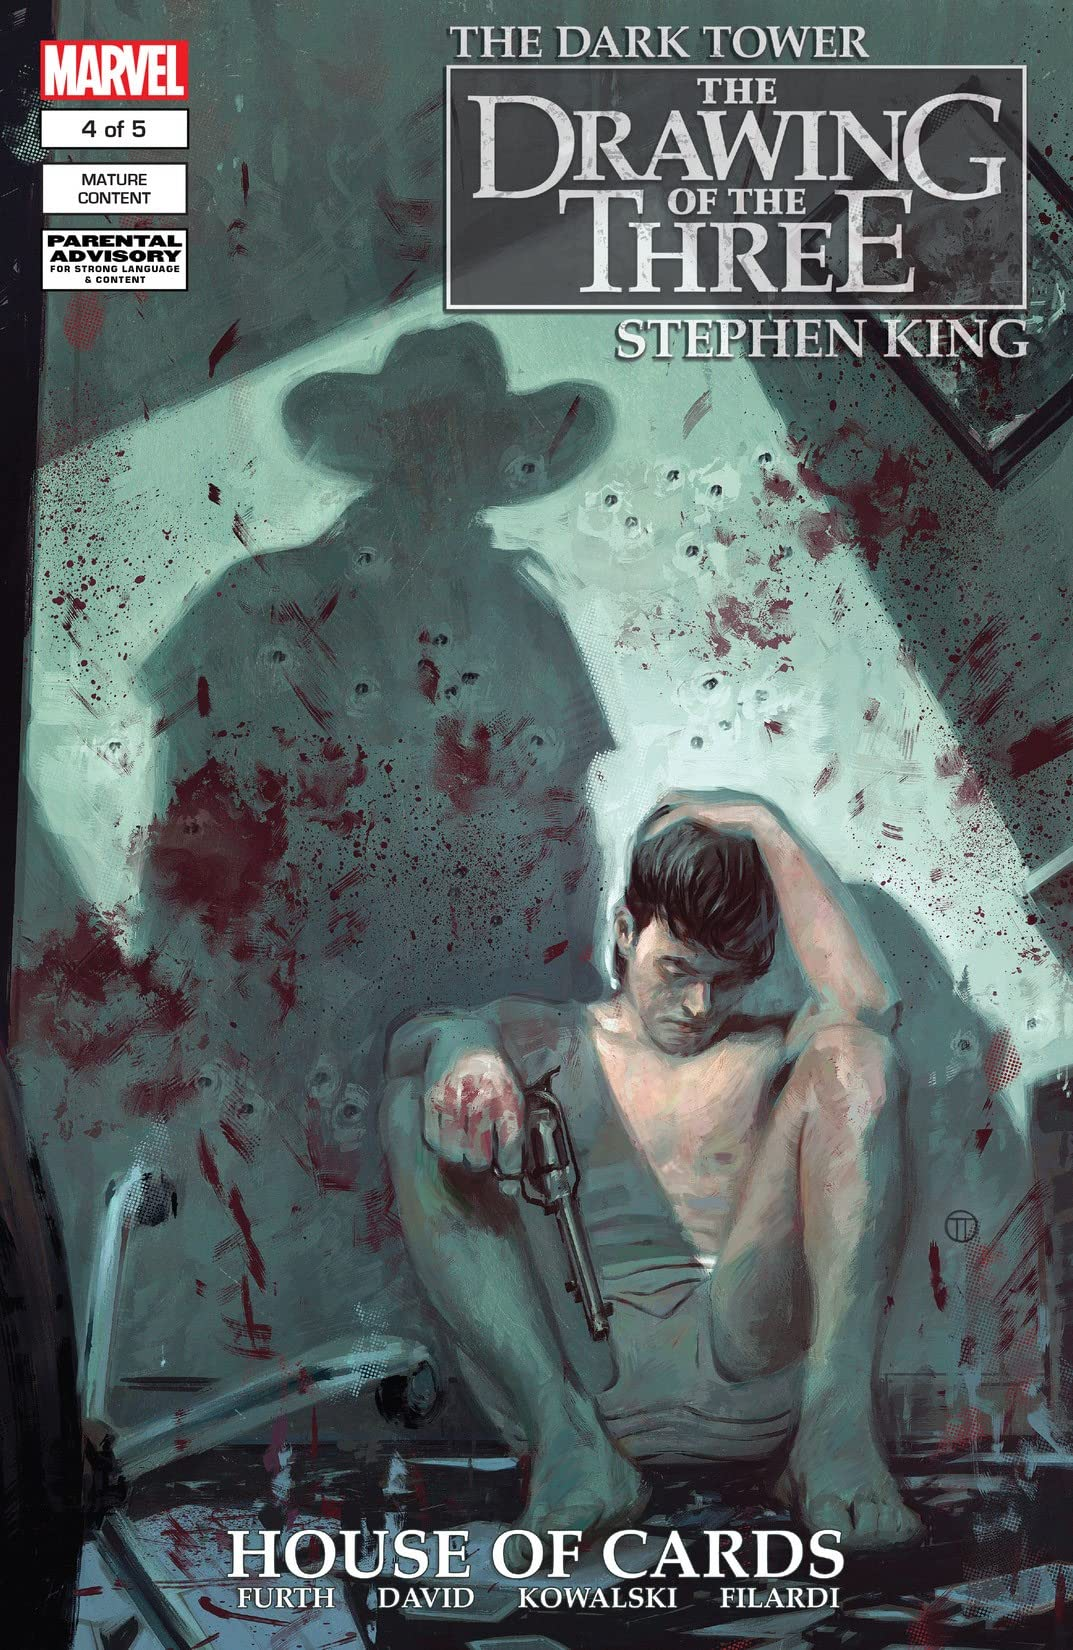 Dark Tower: The Drawing Of The Three - House Of Cards #4 (of 5)